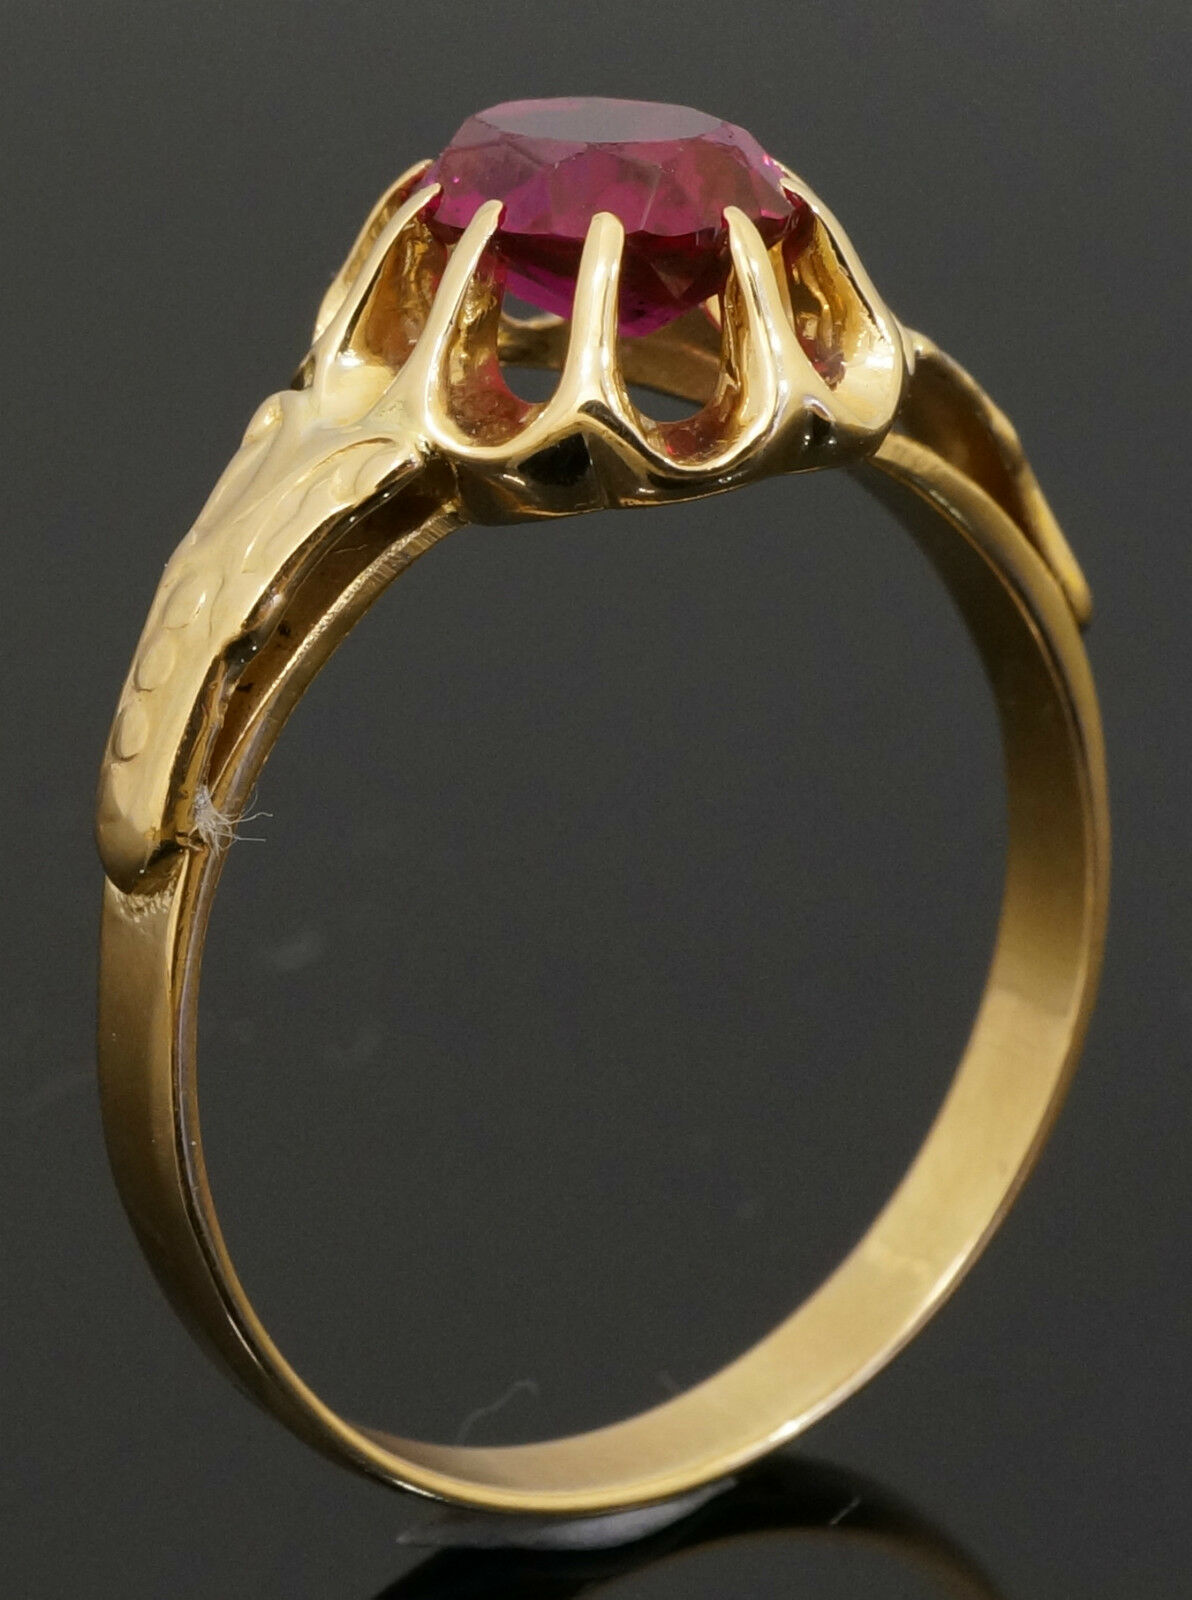 Gold S 14carat Rose Gold Synthetic Rubellite Solitaire Ring Size S